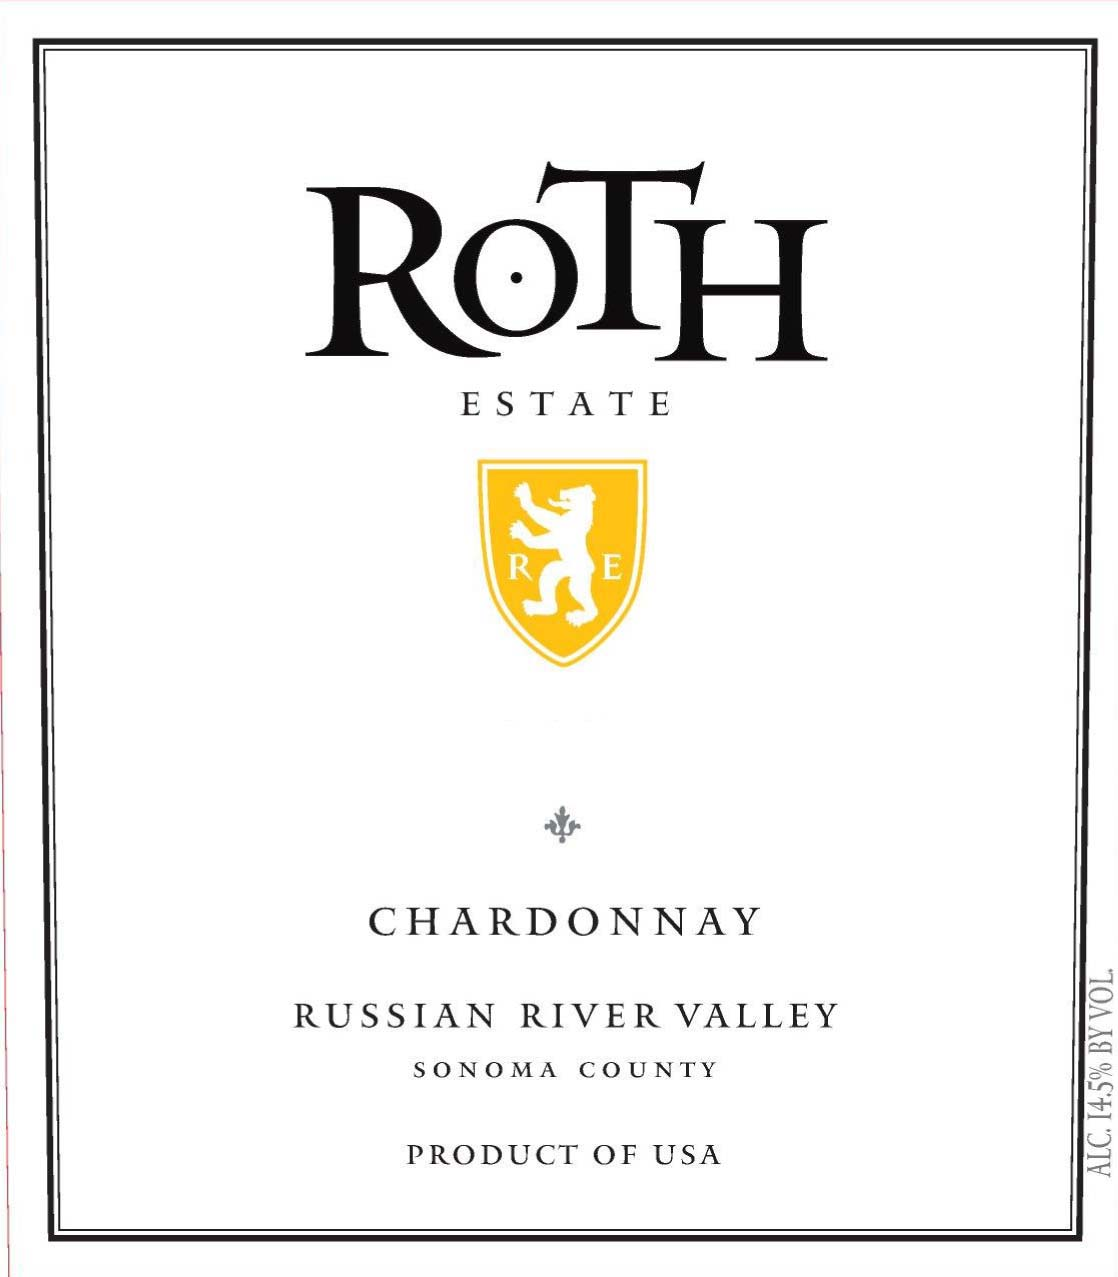 Roth Estate - Chardonnay - Russian River Valley